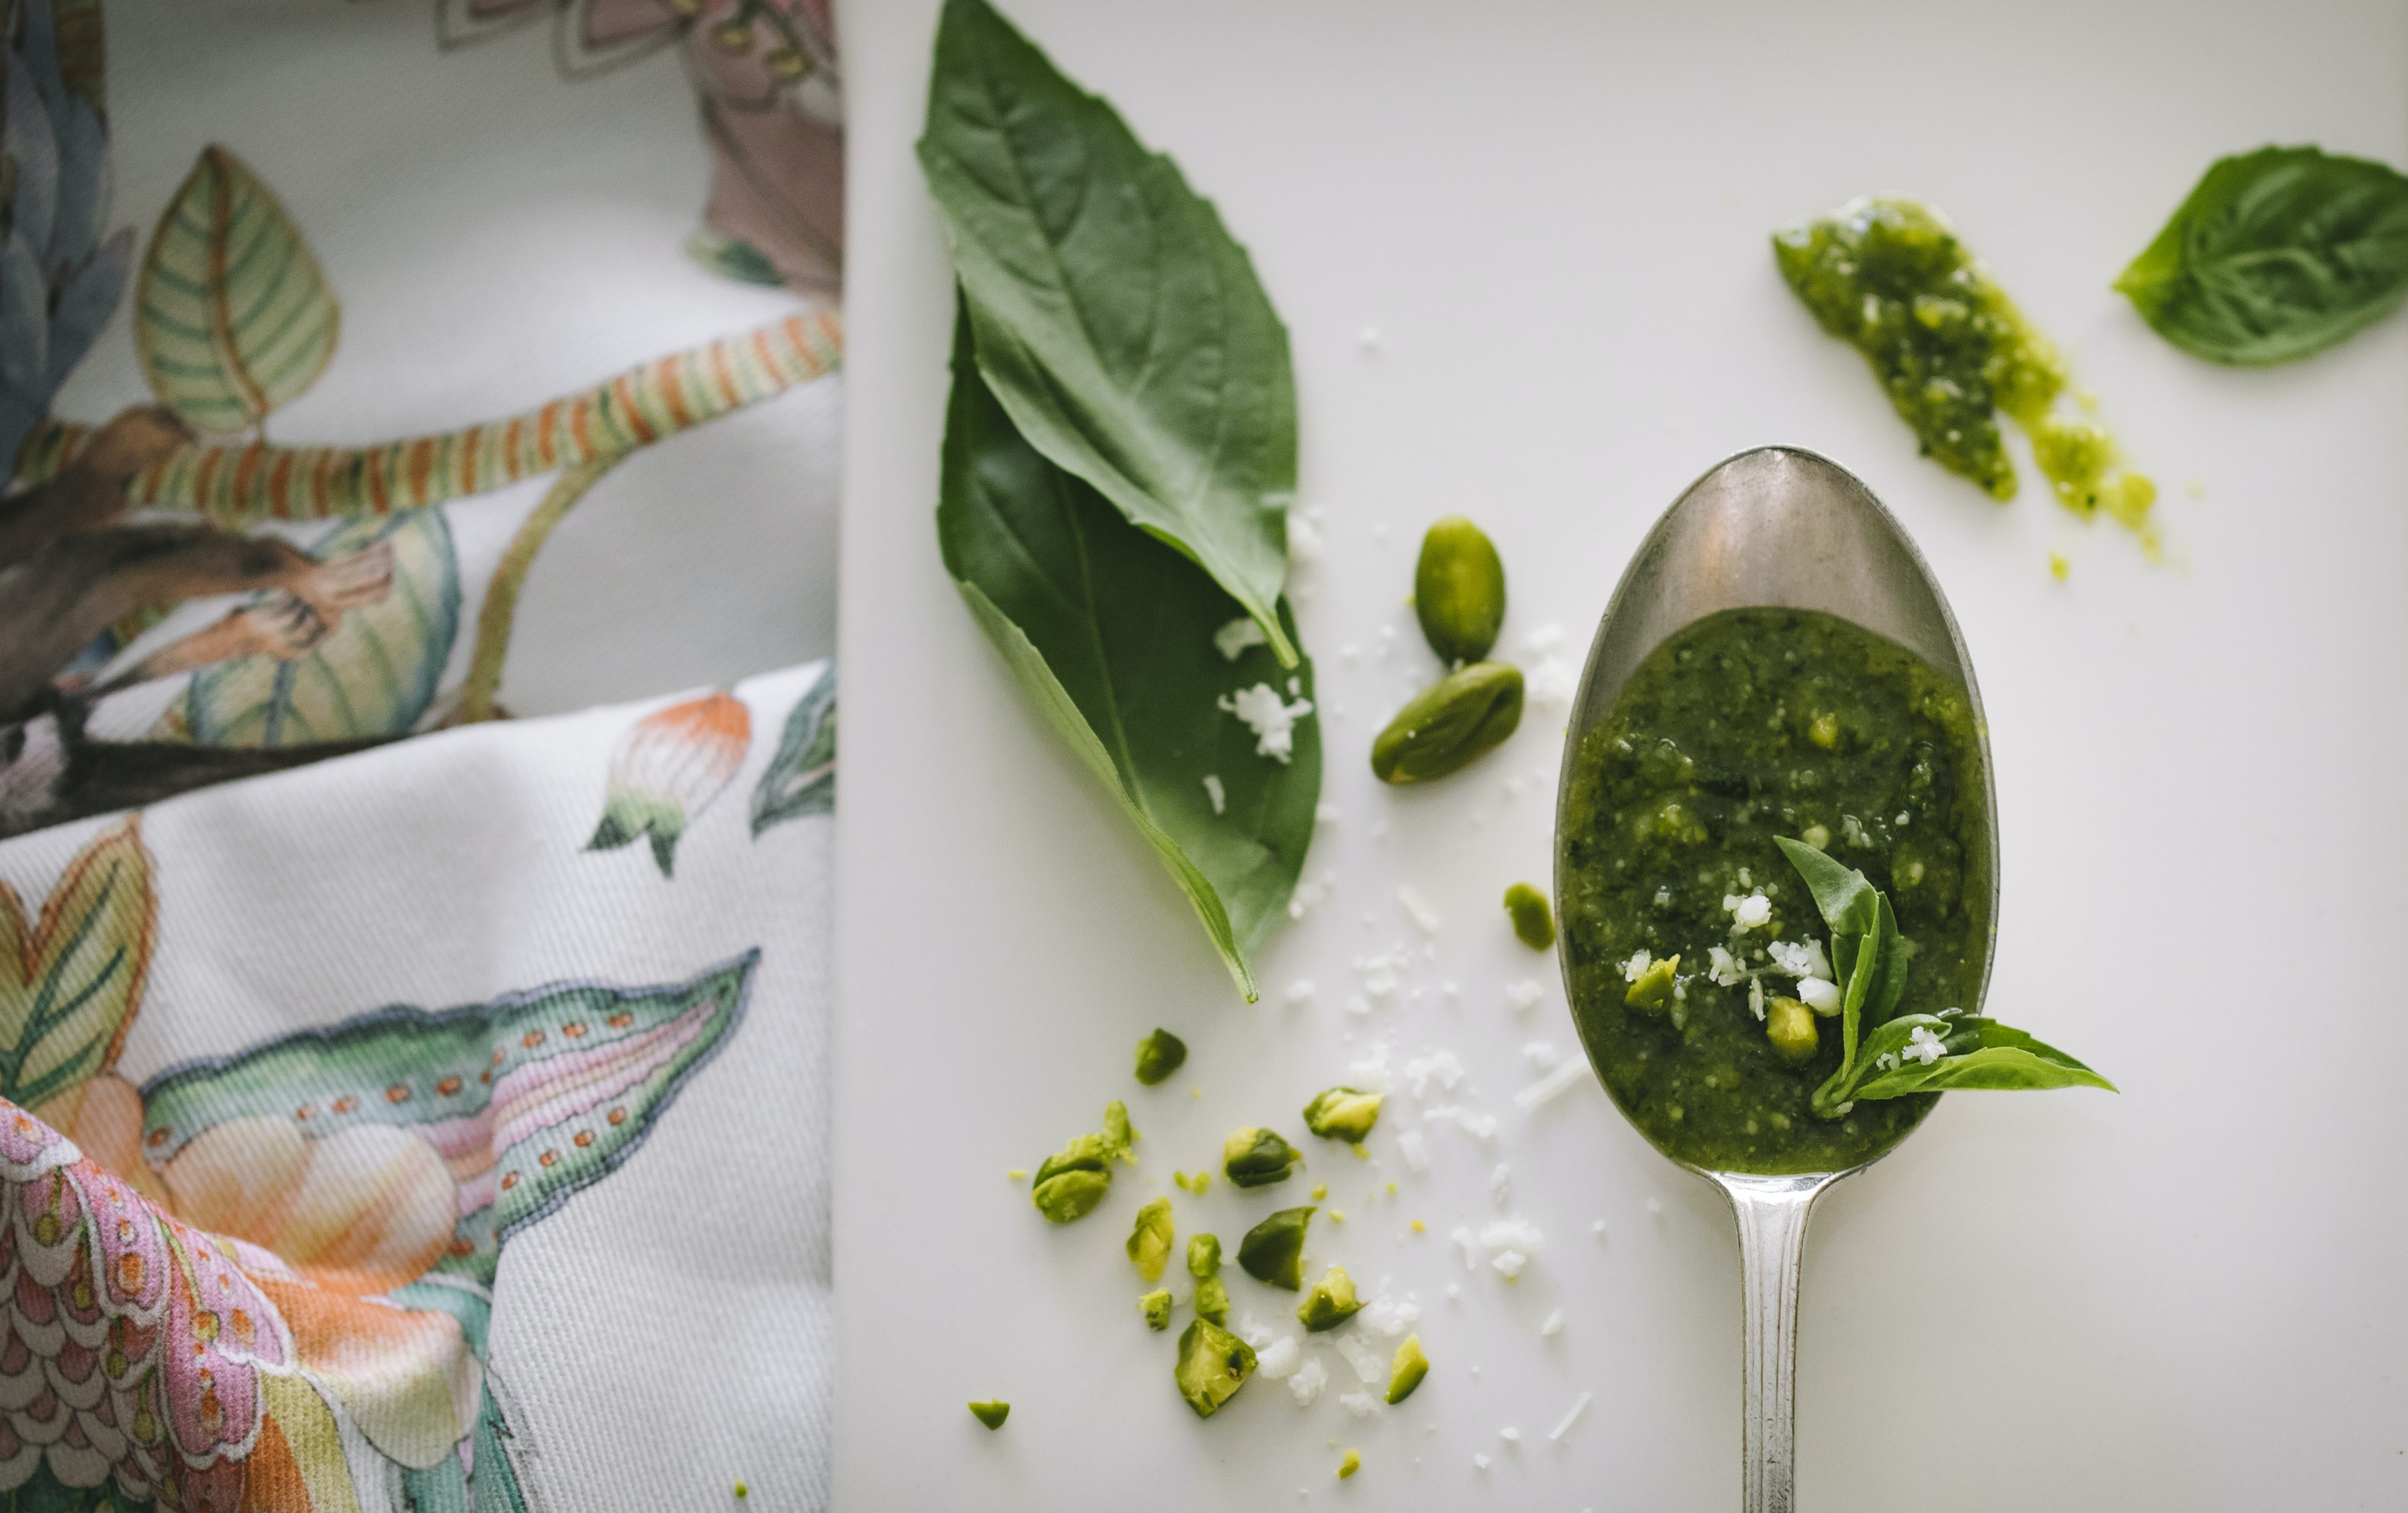 Precognition Pesto Recipe with Muggle Substitutions: From Chapter 4 magic stories